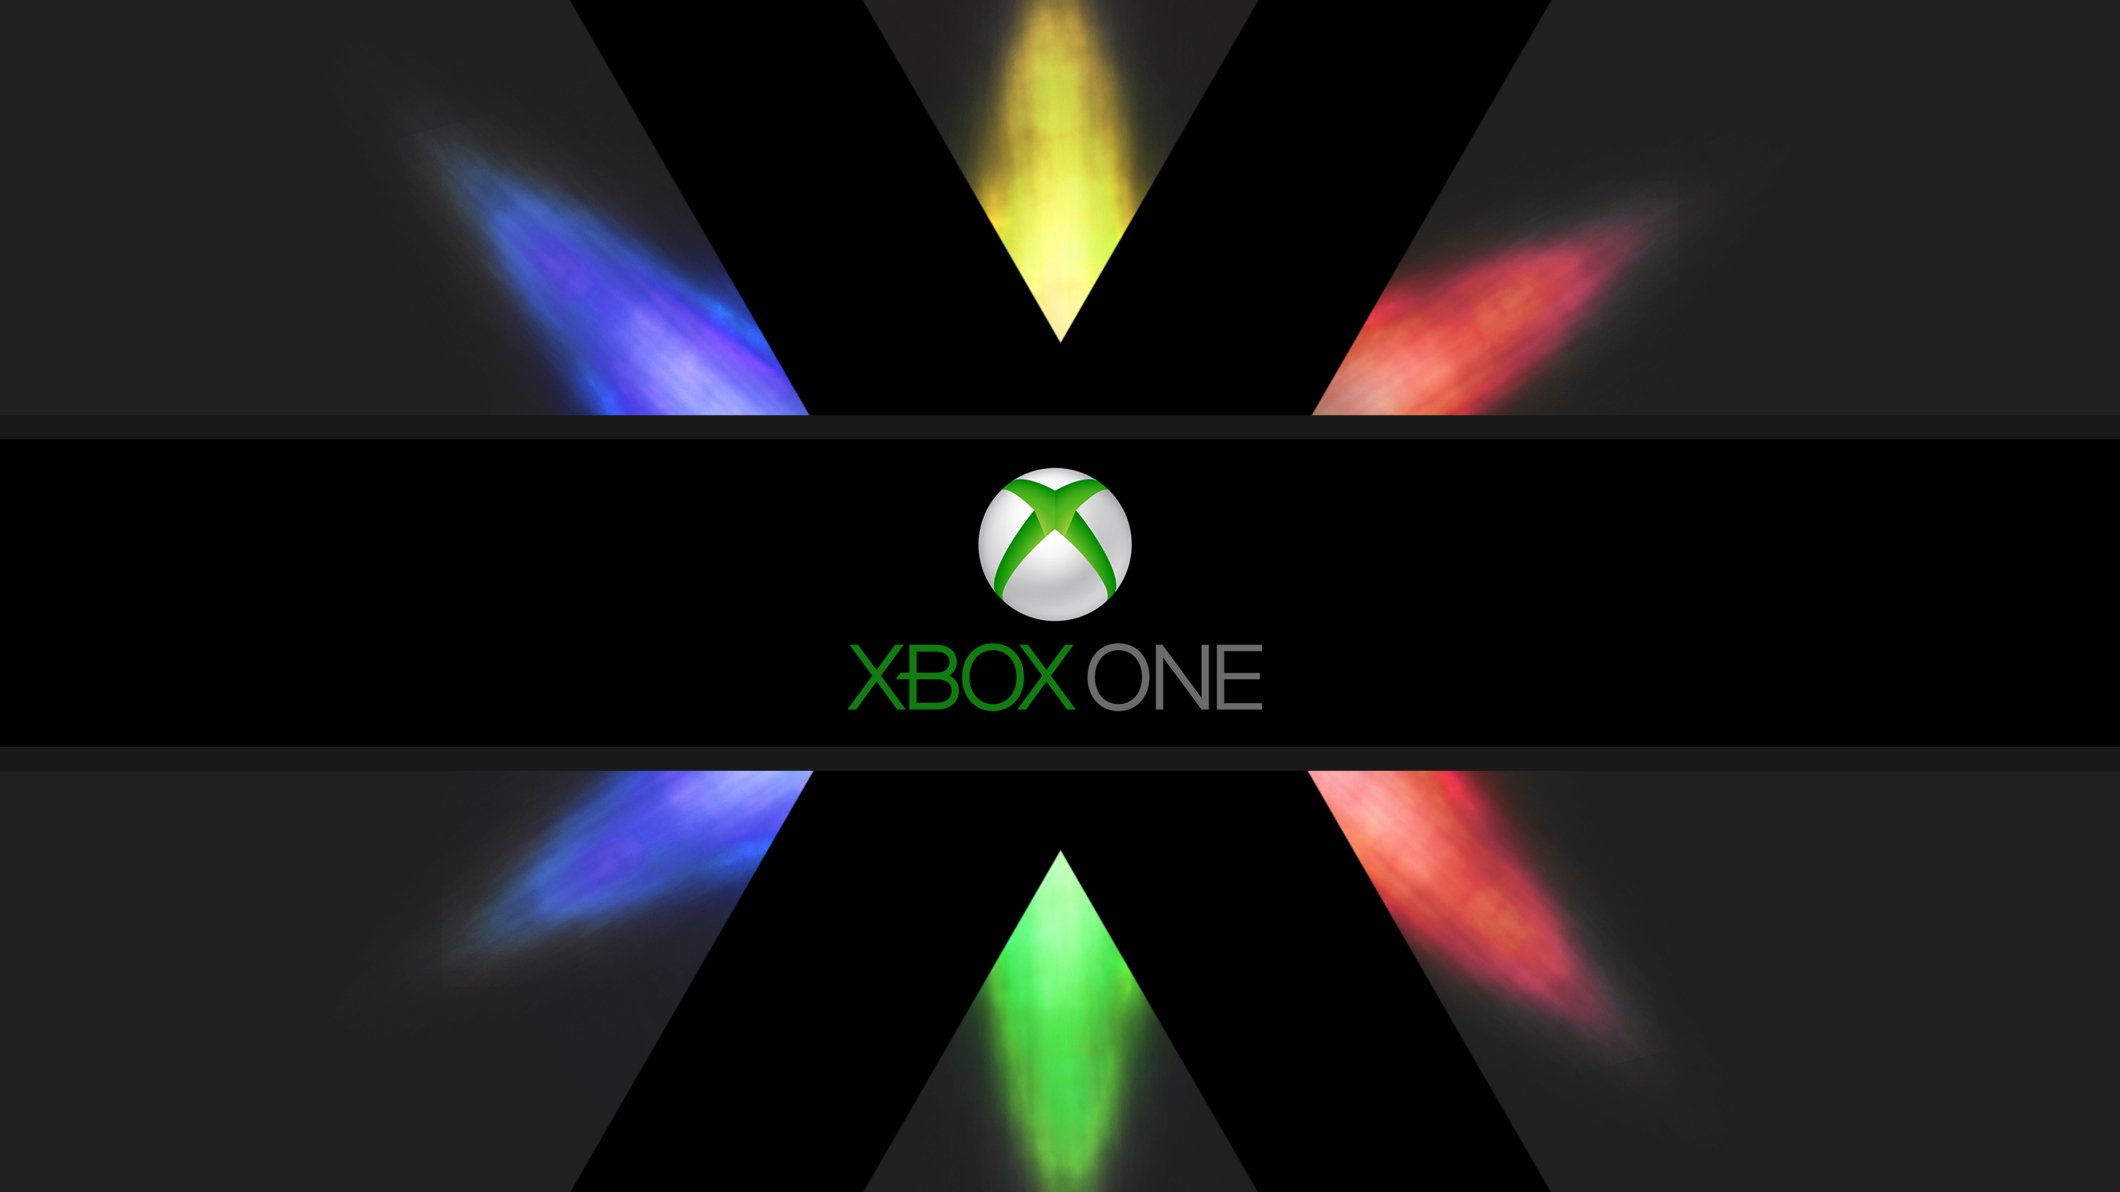 Free Download Cool Xbox Backgrounds Sf Wallpaper 2120x1192 For Your Desktop Mobile Tablet Explore 49 Xbox Backgrounds Xbox Wallpapers For Xbox One Xbox Wallpapers Xbox Backgrounds